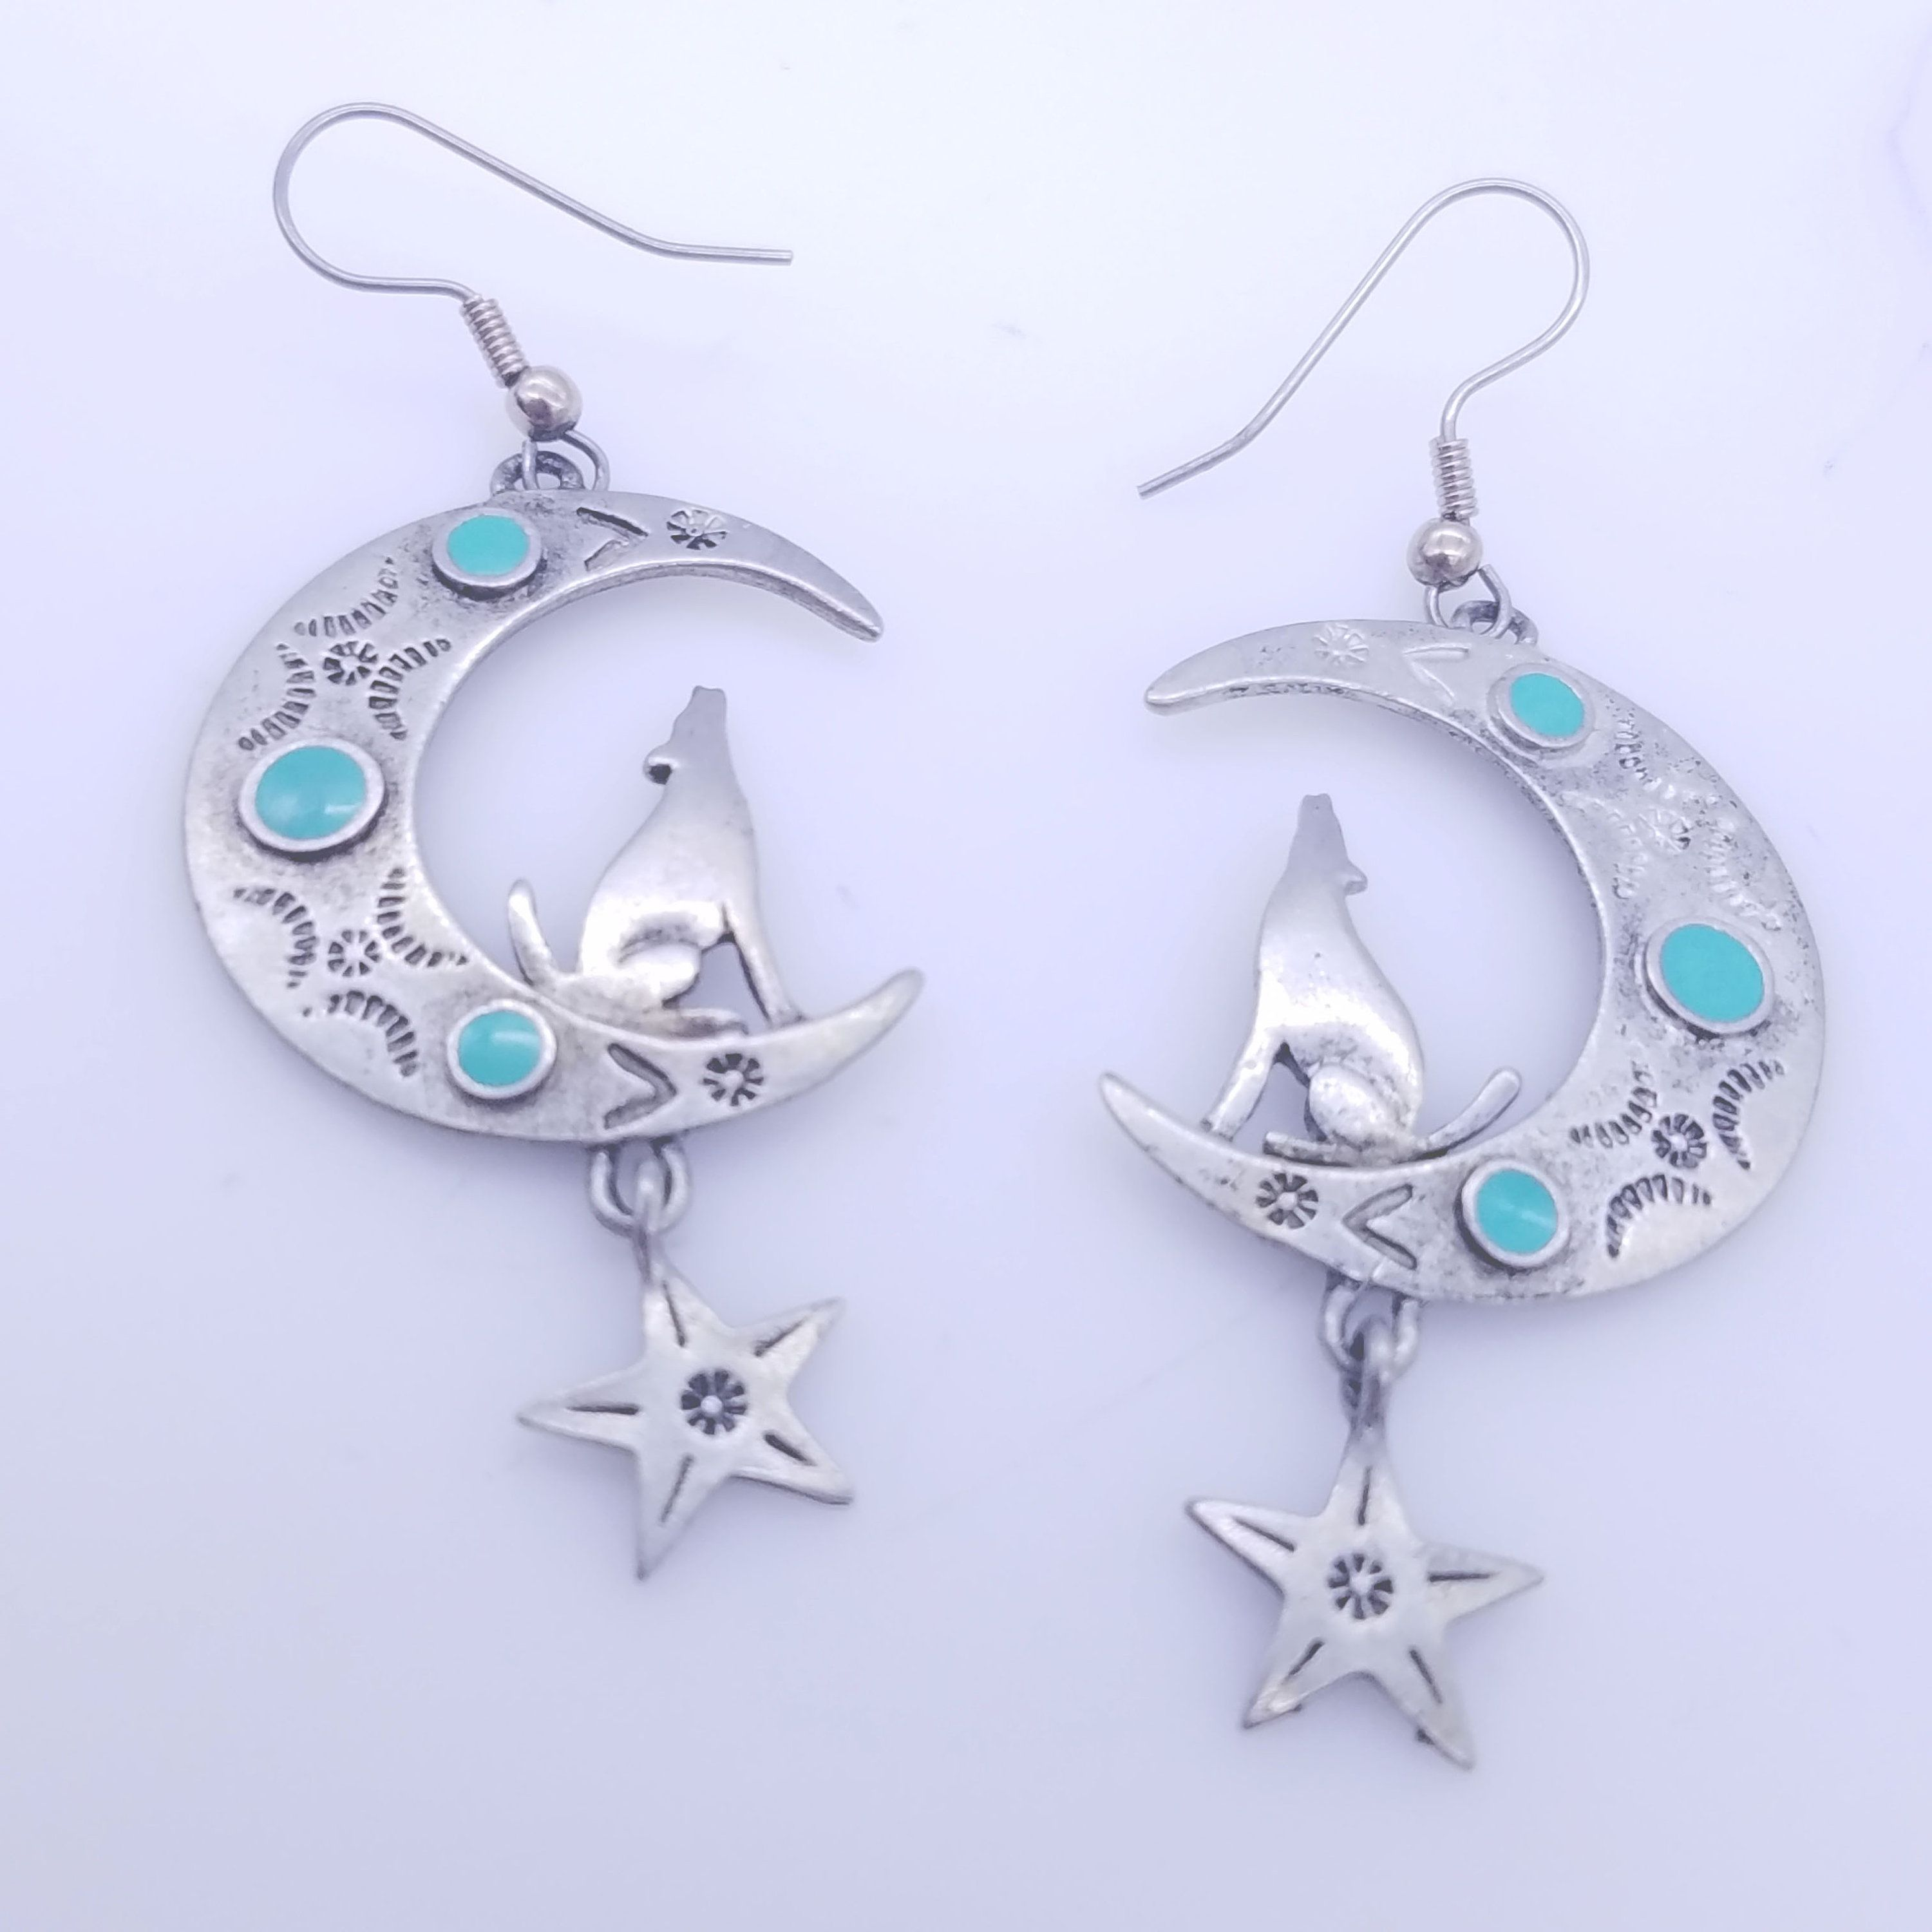 Coyote Moon Amp Star Pewter Earrings With Turquoise